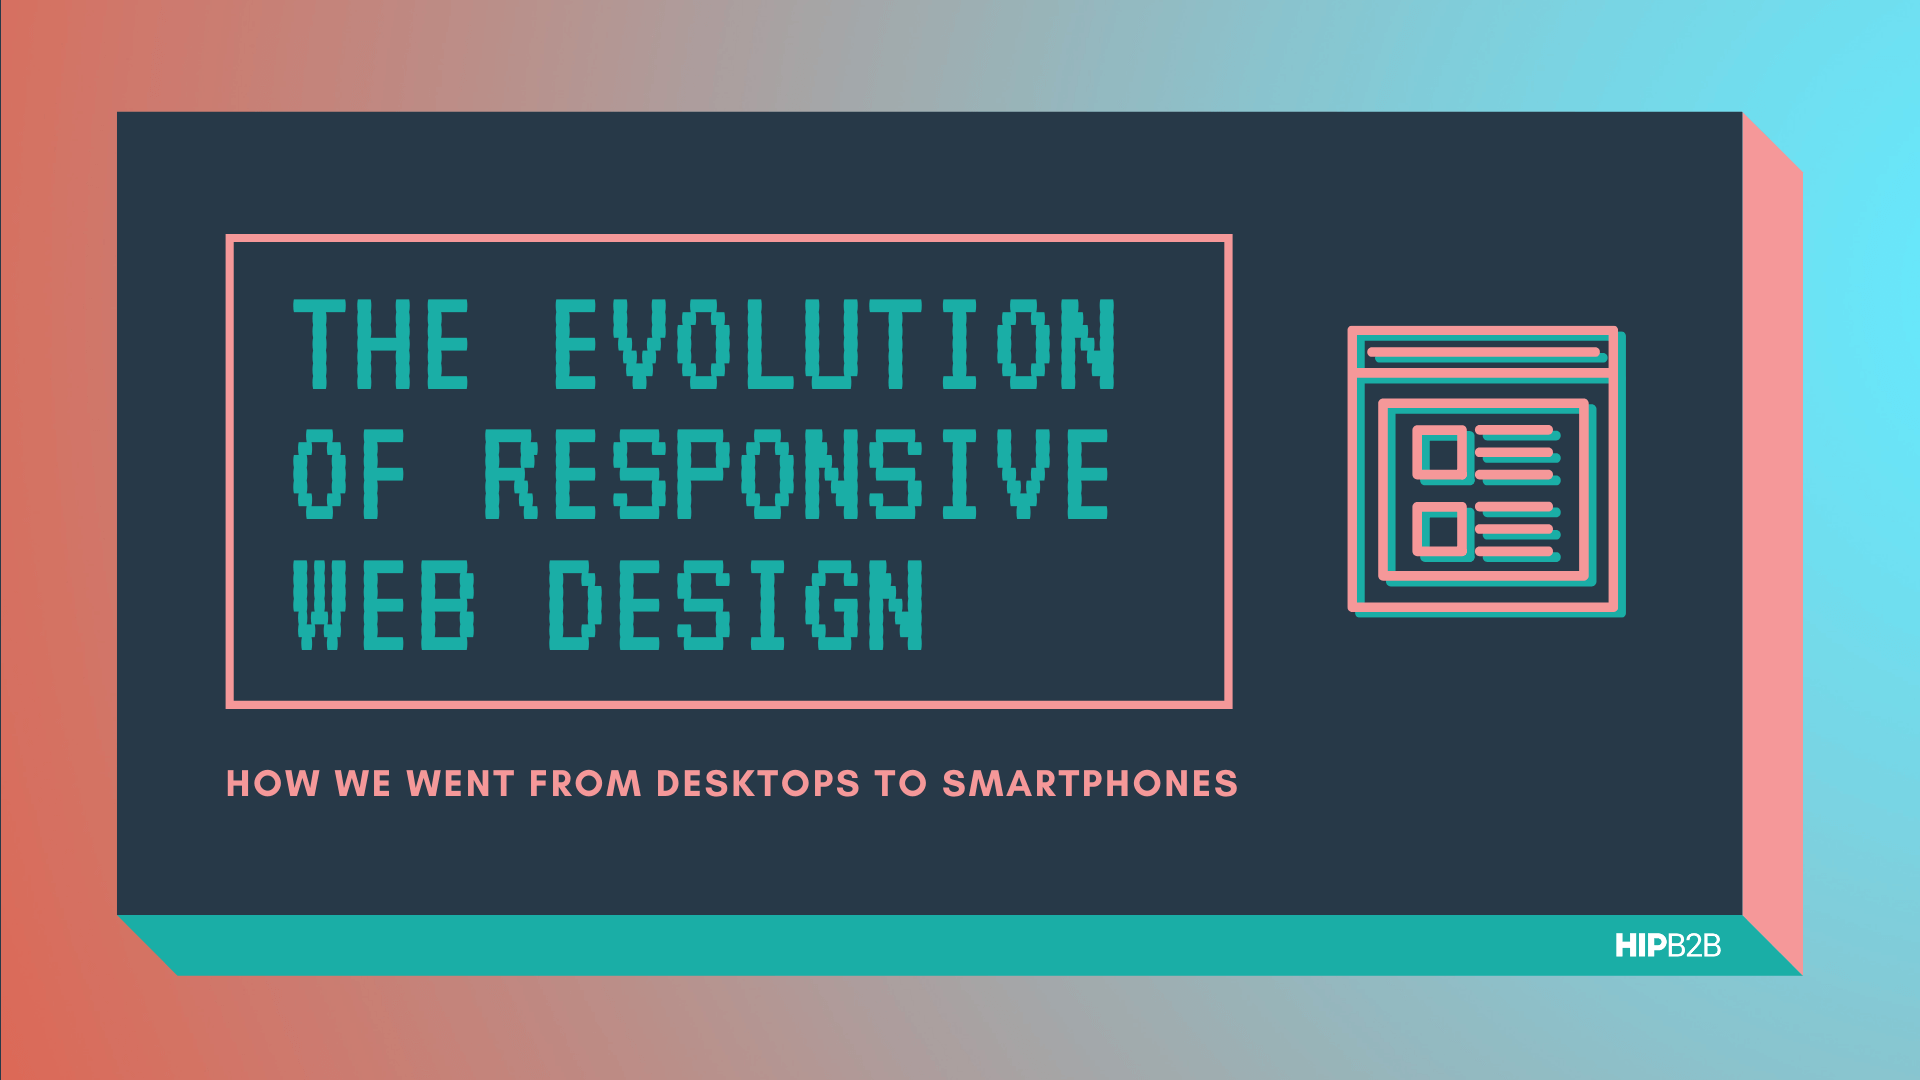 The Evolution of Responsive Web Design